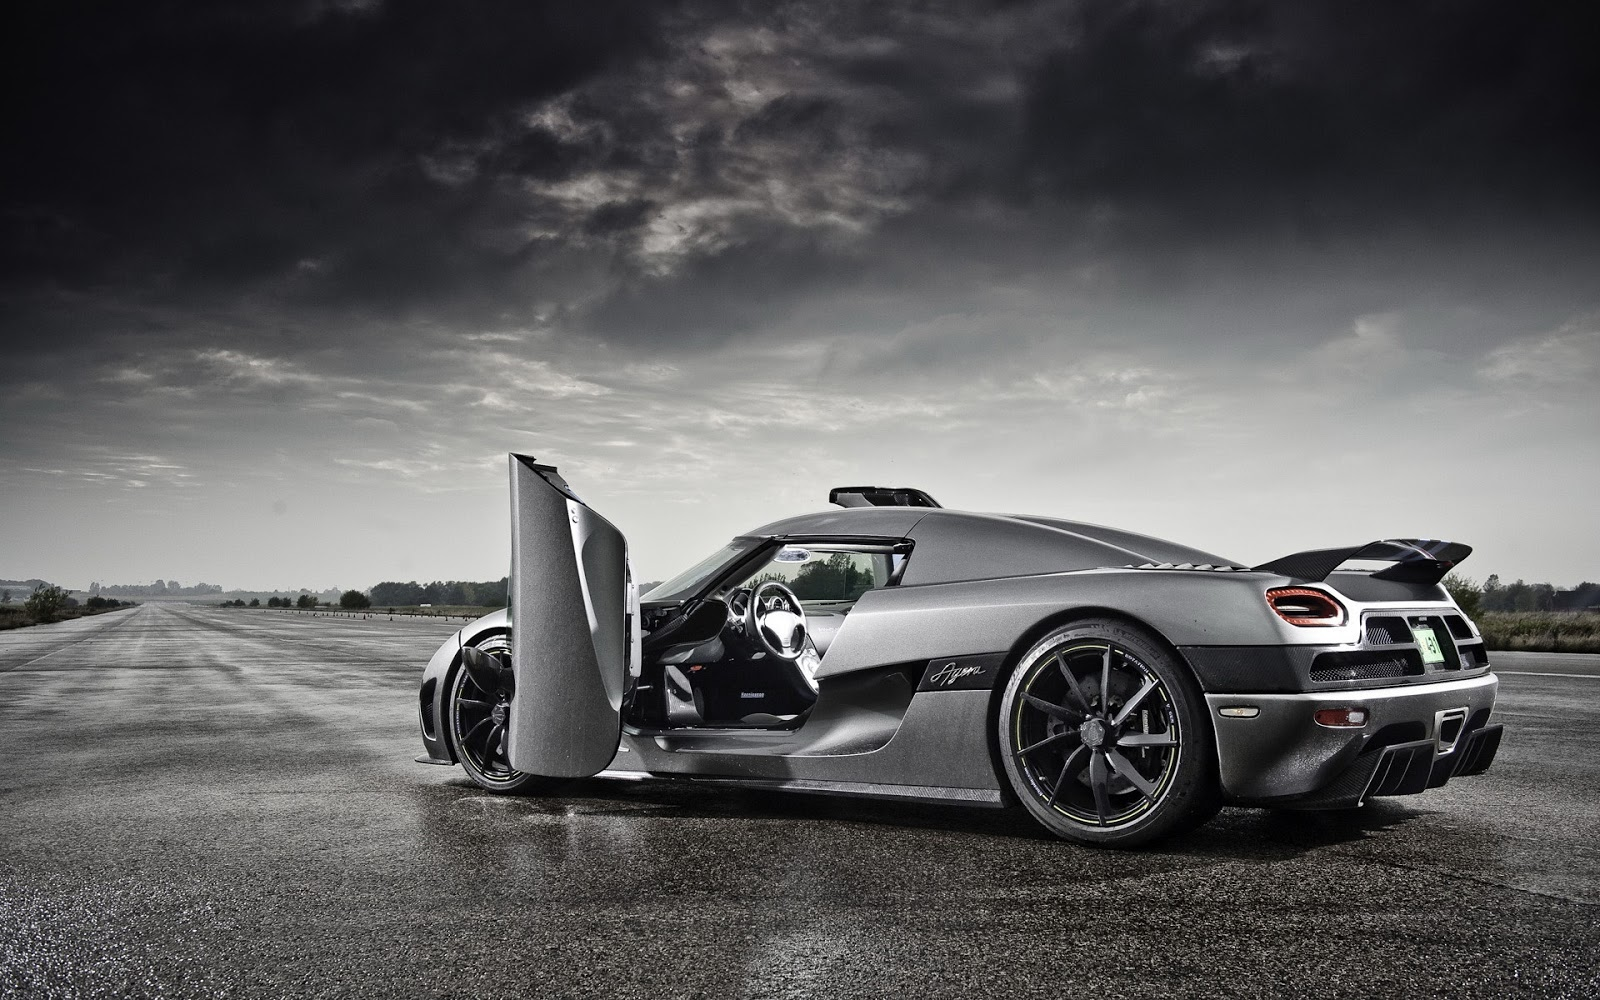 Super Cars 2013 HD Wallpapers HD Wallpapers 360 1600x1000